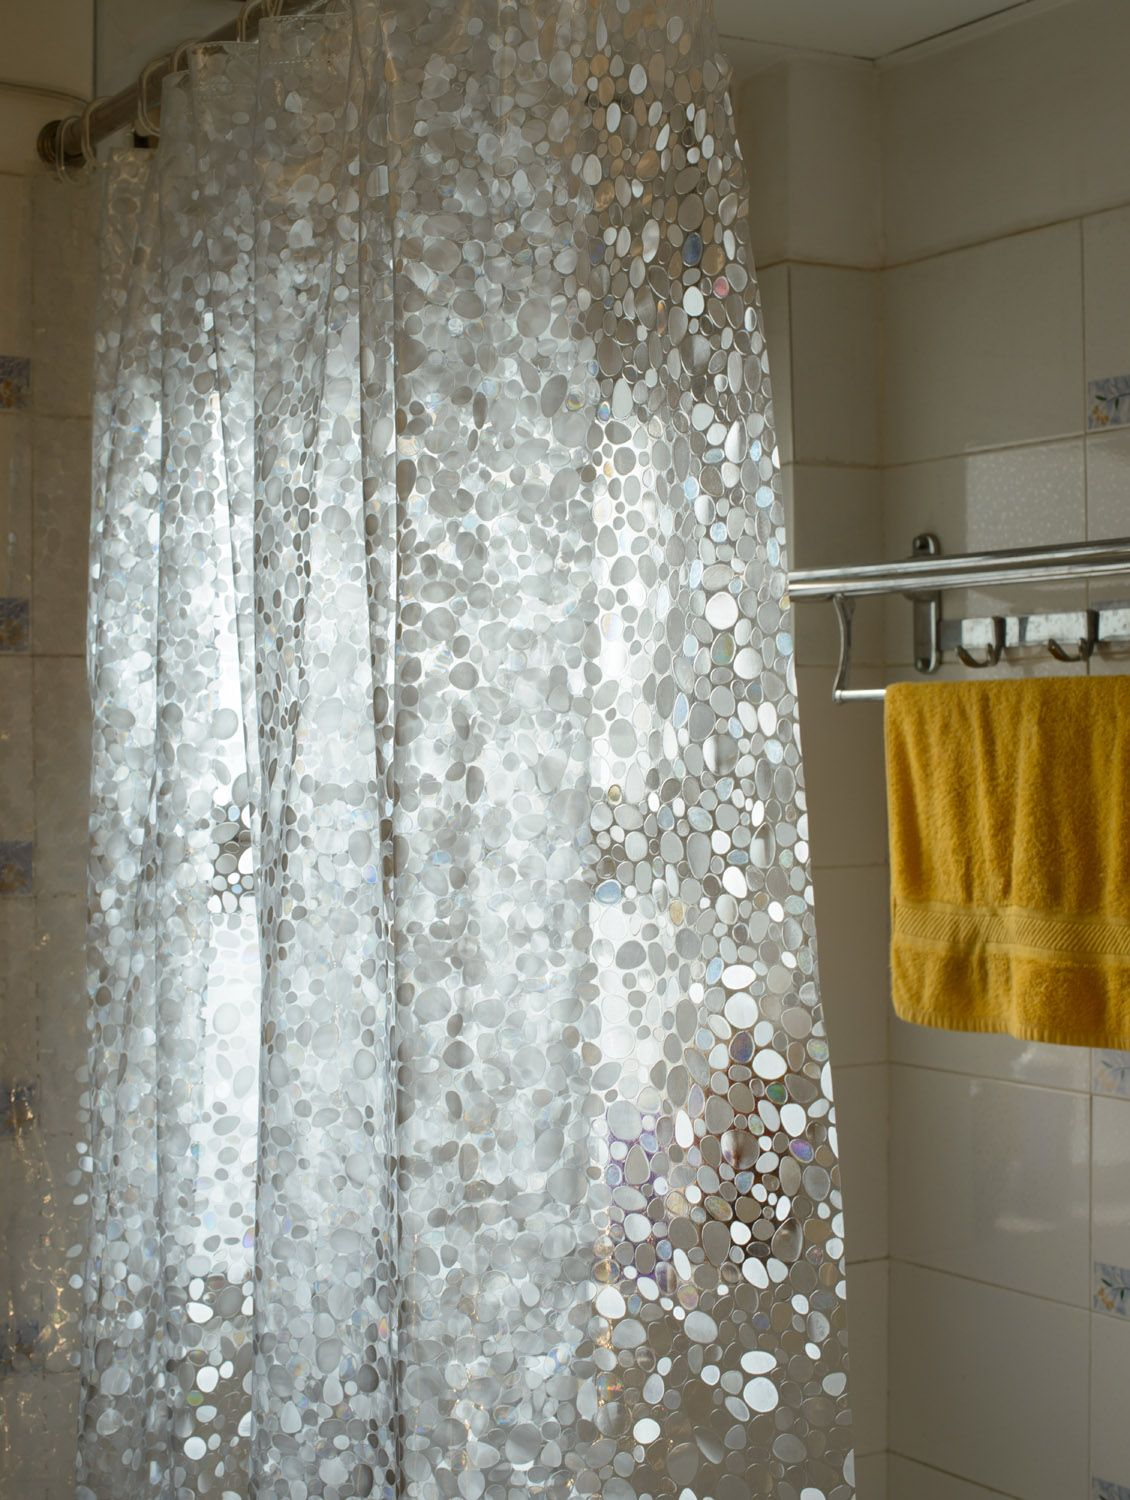 Artwork of Awesome Clear Shower Curtain With Design | Bathroom ideas ...